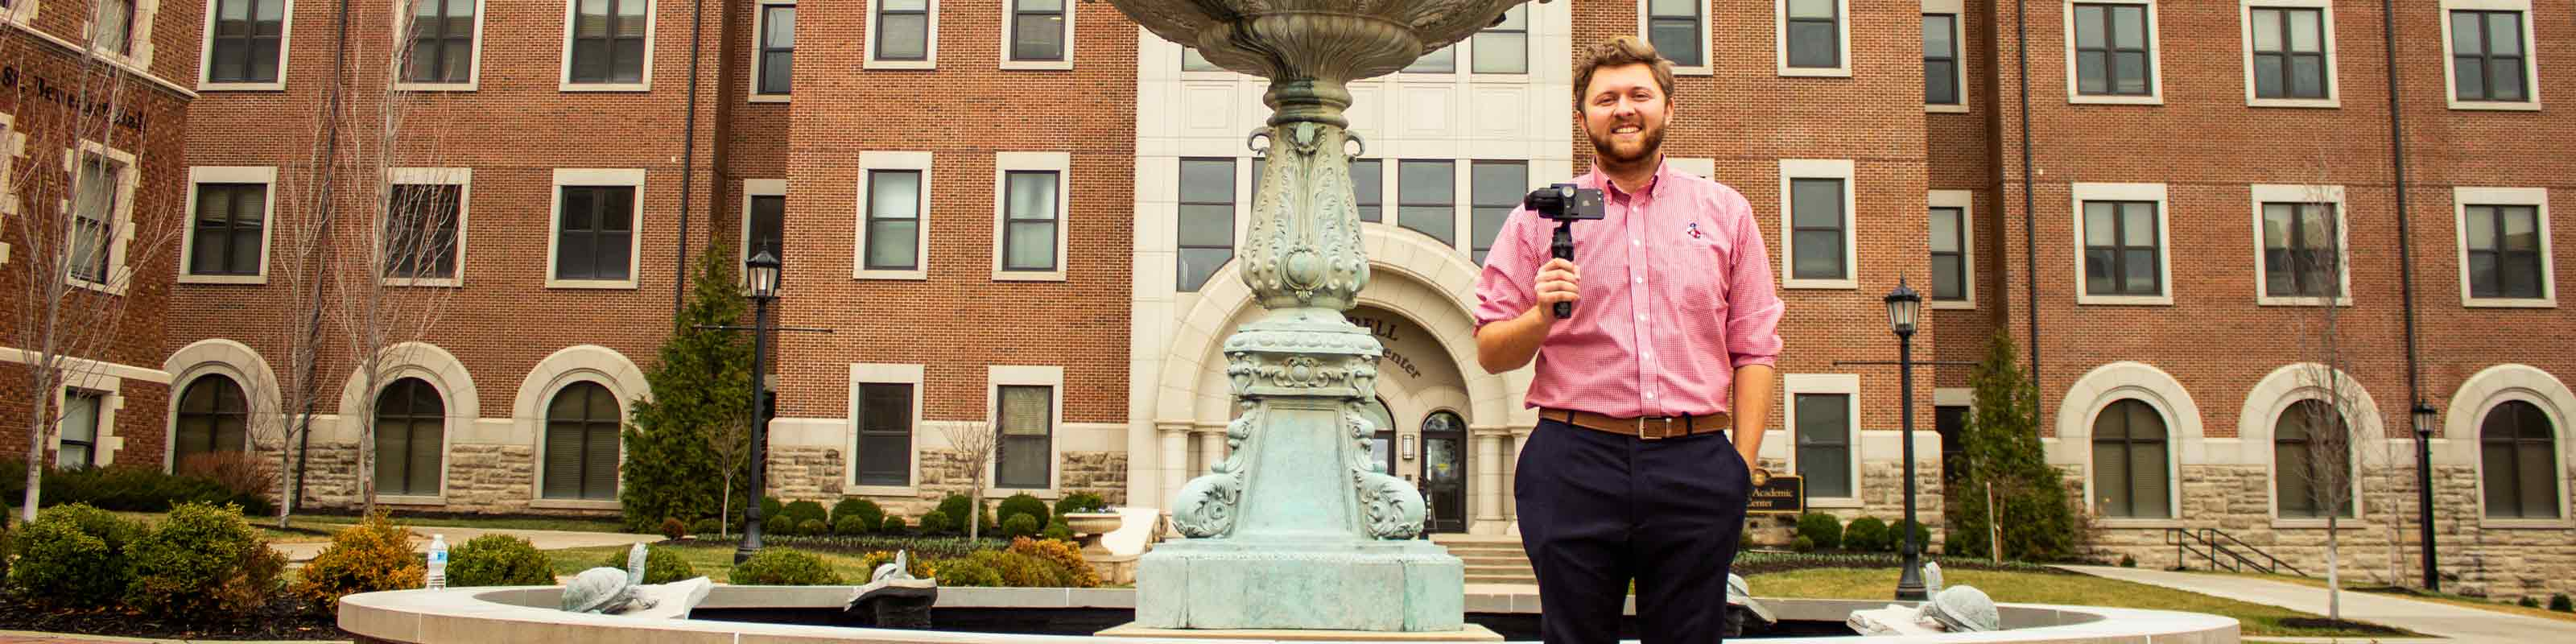 An Admission Counselor stands next to Our Lady of Grace Fountain holding a smartphone in a gimble